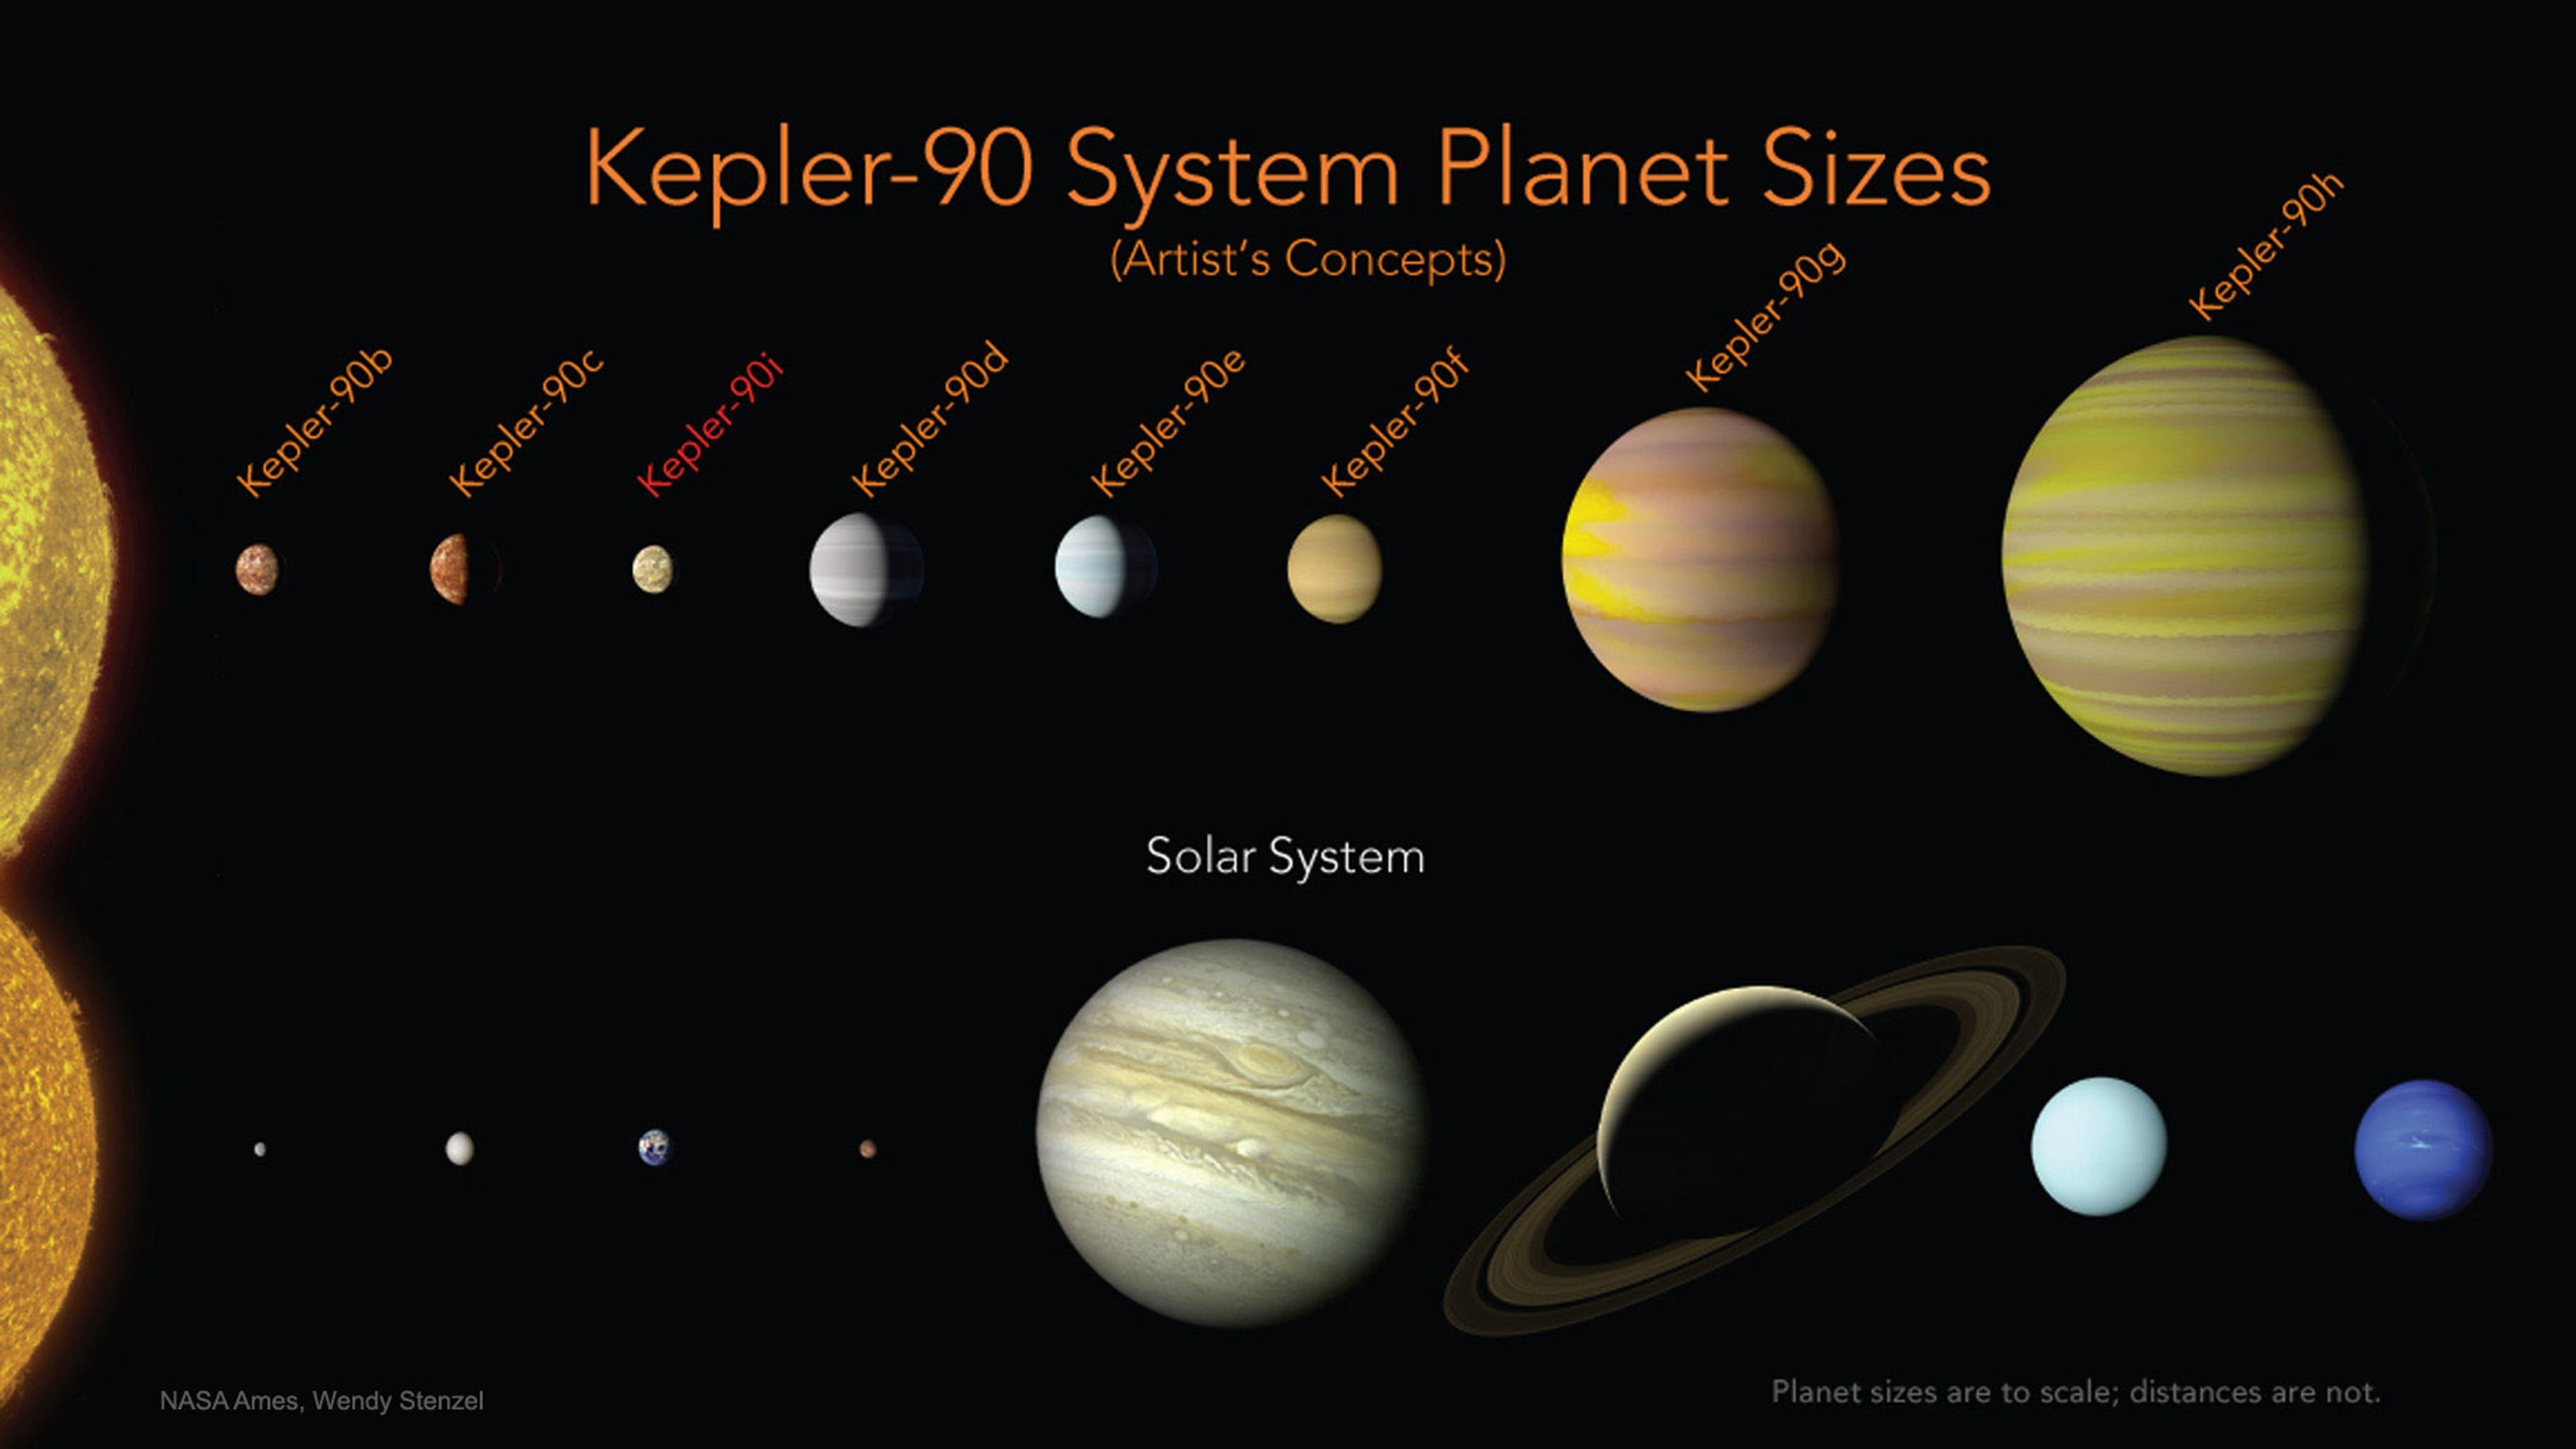 The Kepler-90 Planetary System.